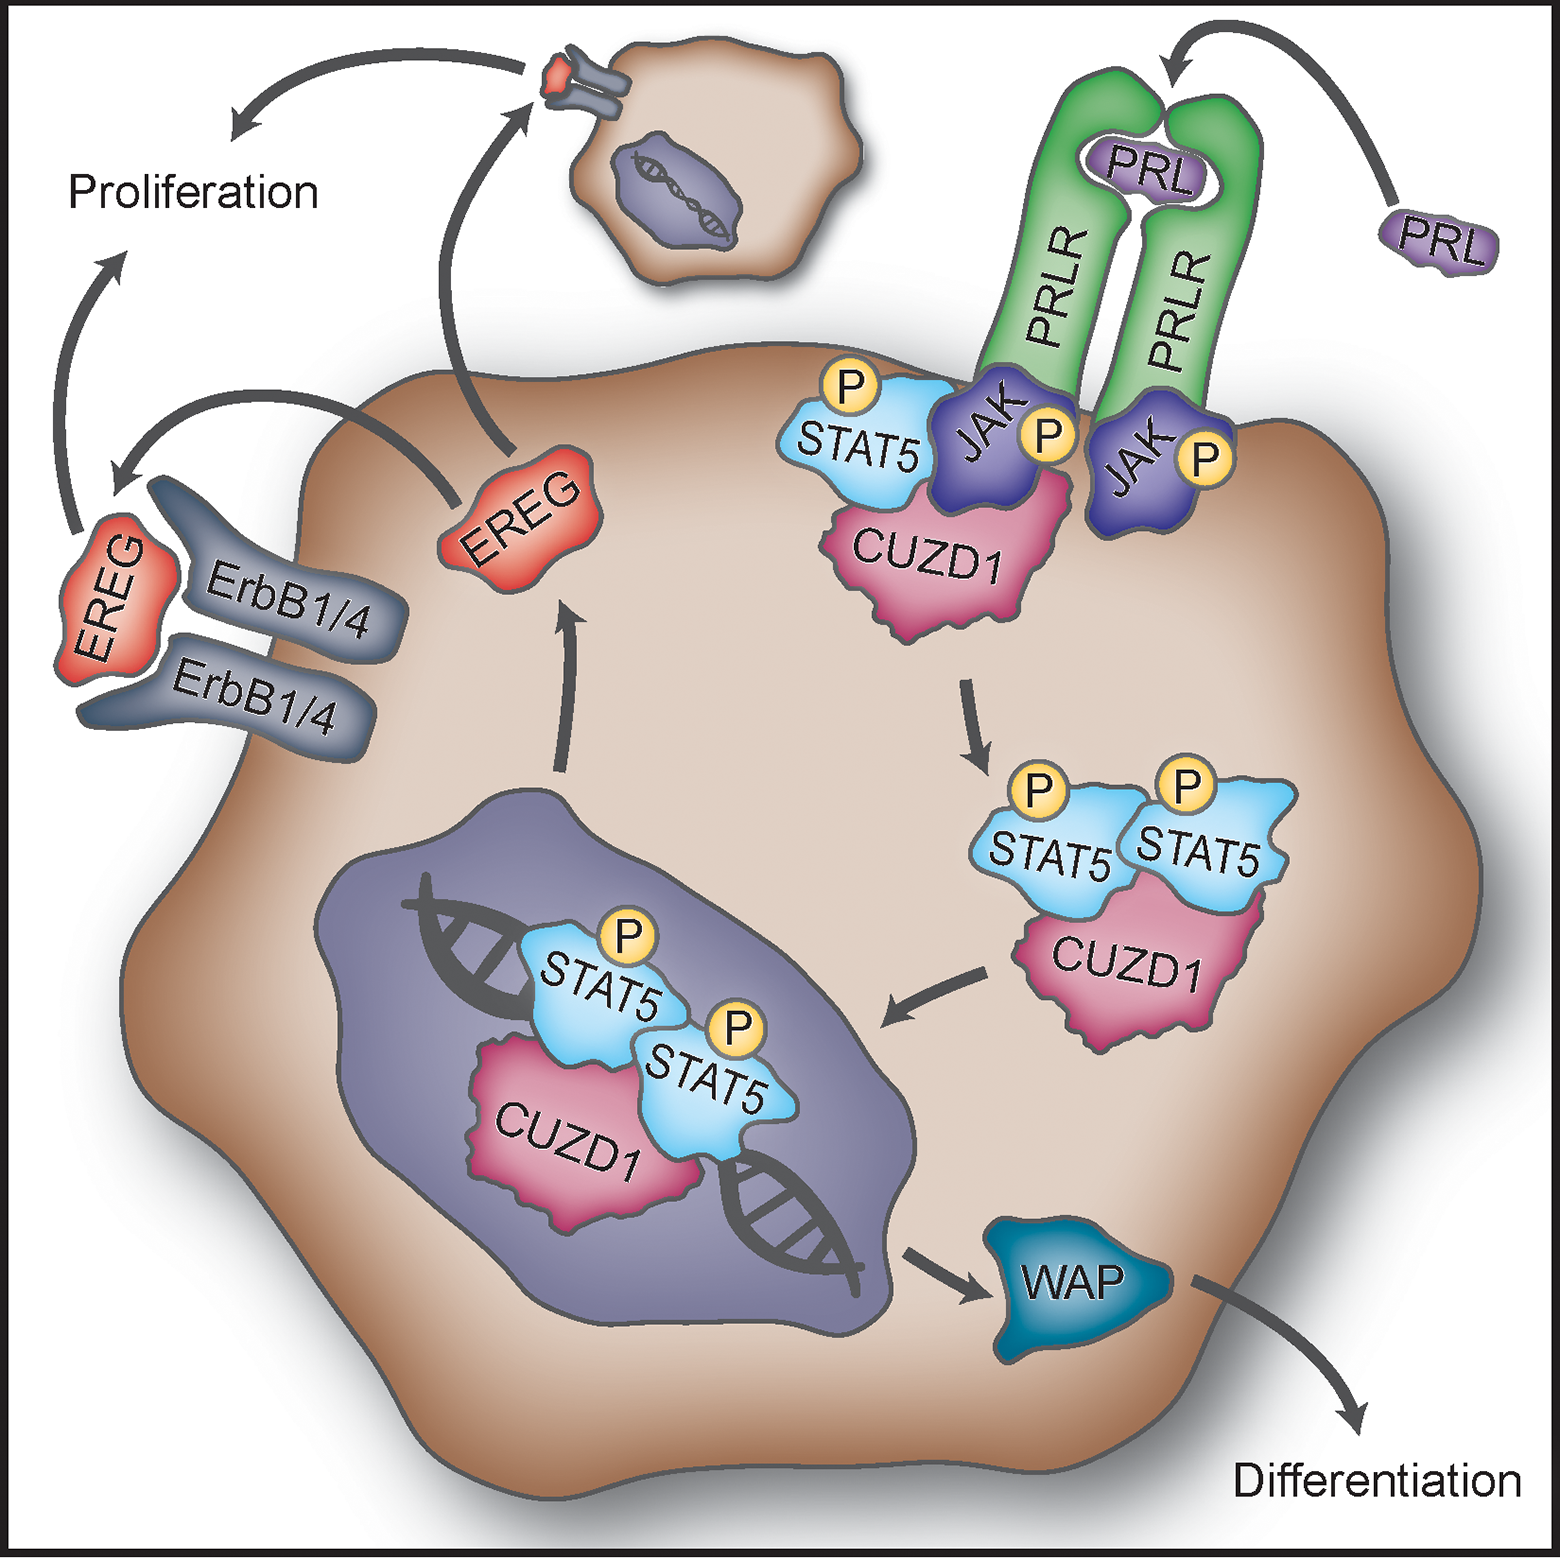 Proposed mechanism of action of CUZD1 in the mammary gland epithelium.